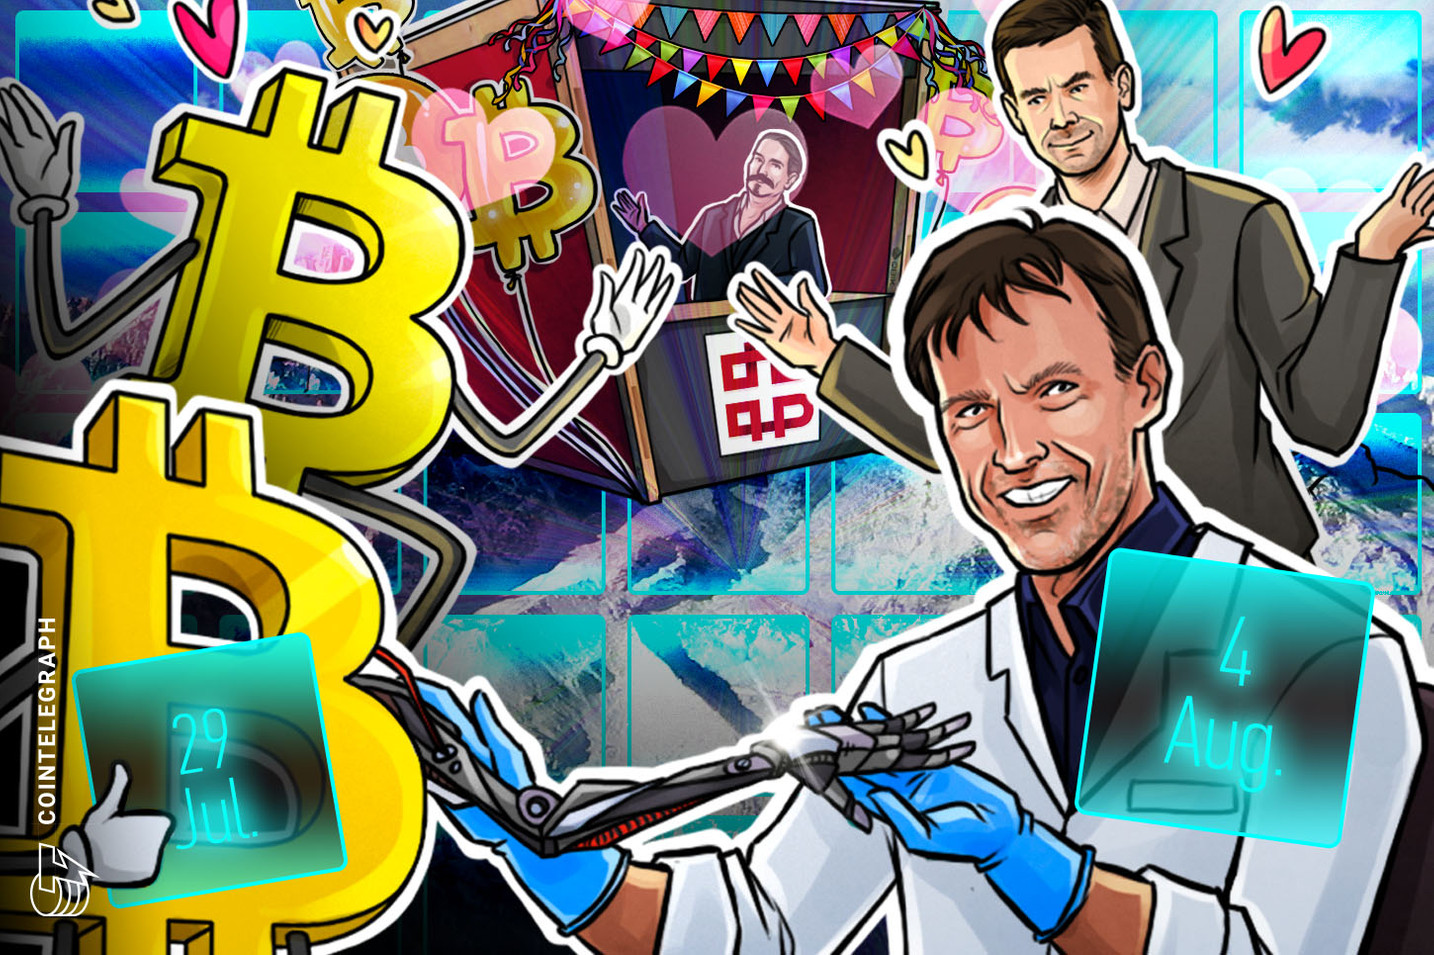 Hodler's Digest, July 29 – Aug. 4: Facebook's Libra Confession, US Urged to Lead Way on Crypto